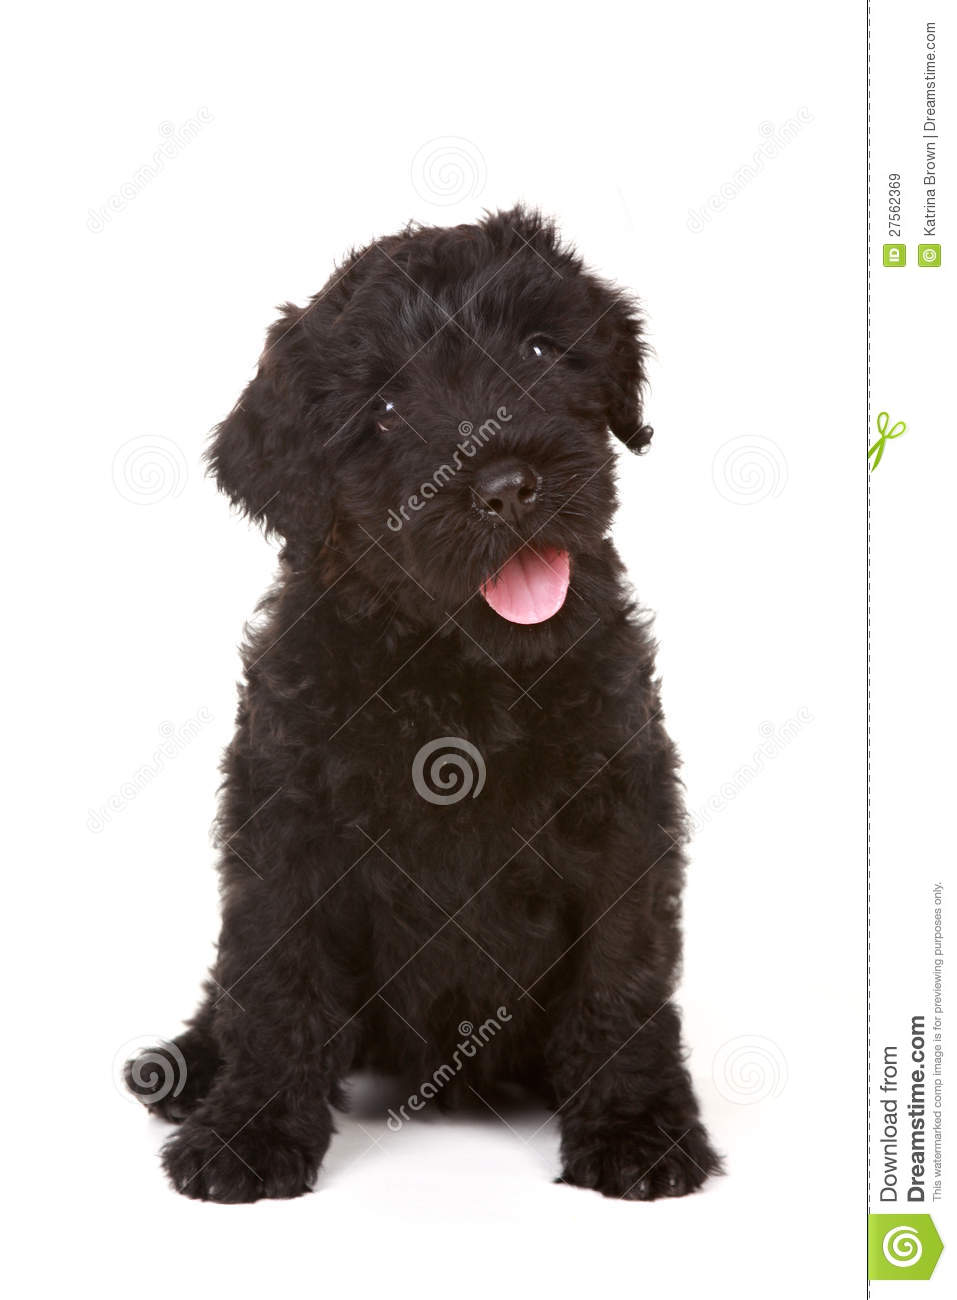 Little Black Russian Terrier Puppy On White Backgr Royalty